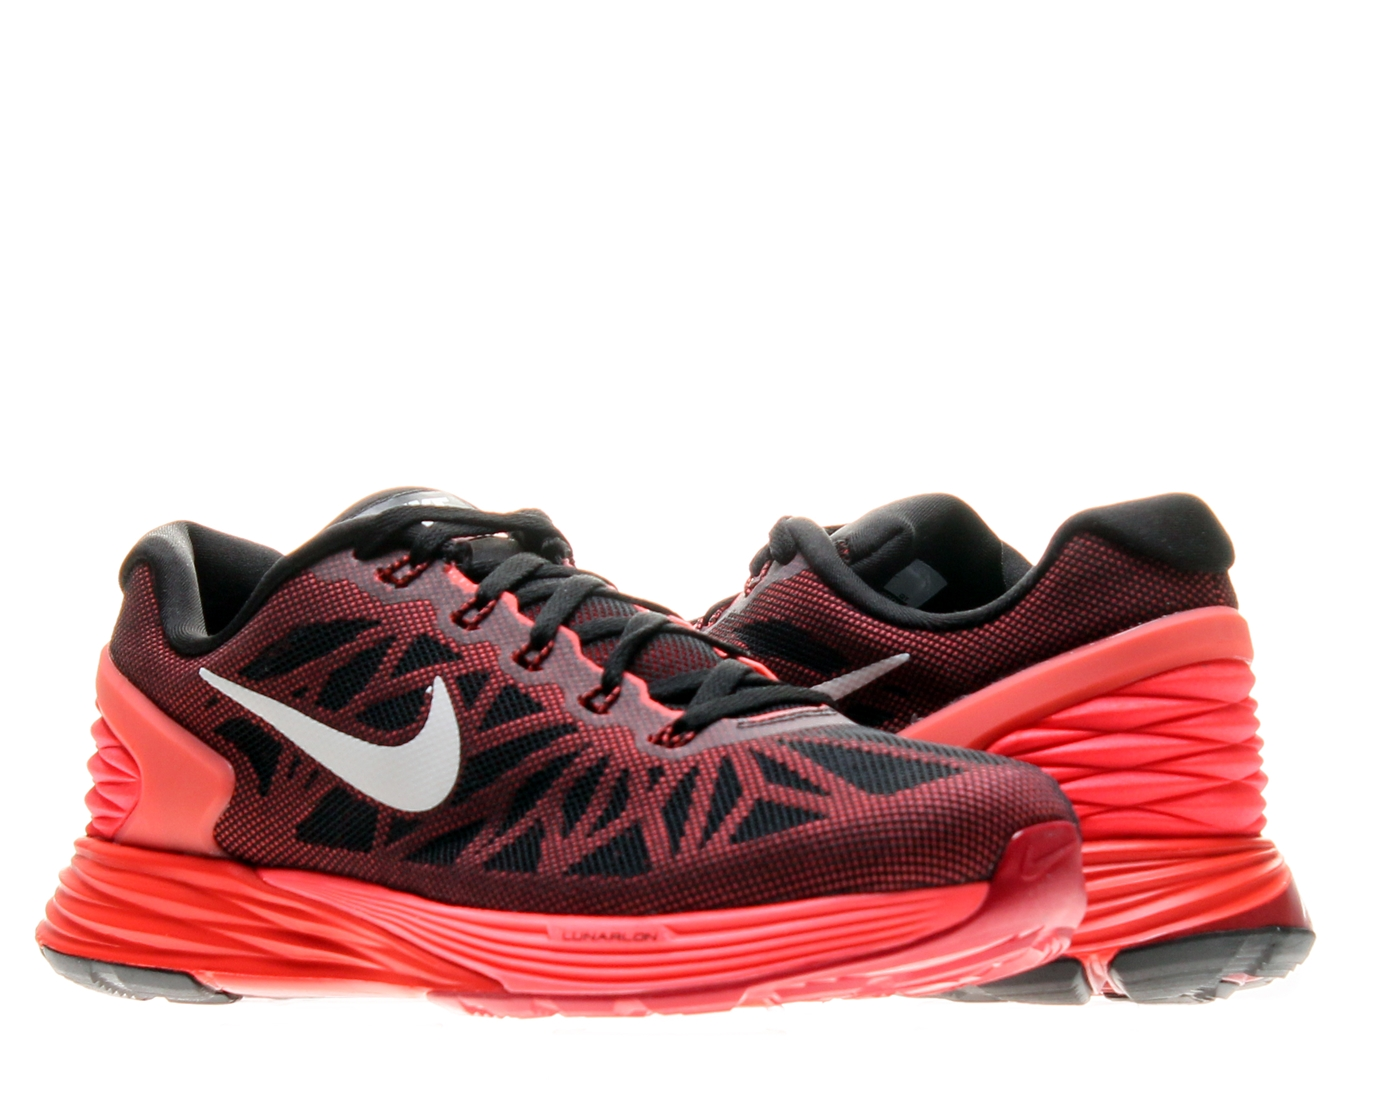 340a4f5d7a1f cheapest nike lunarglide 6 photosynth for android 4f6e4 b2a16